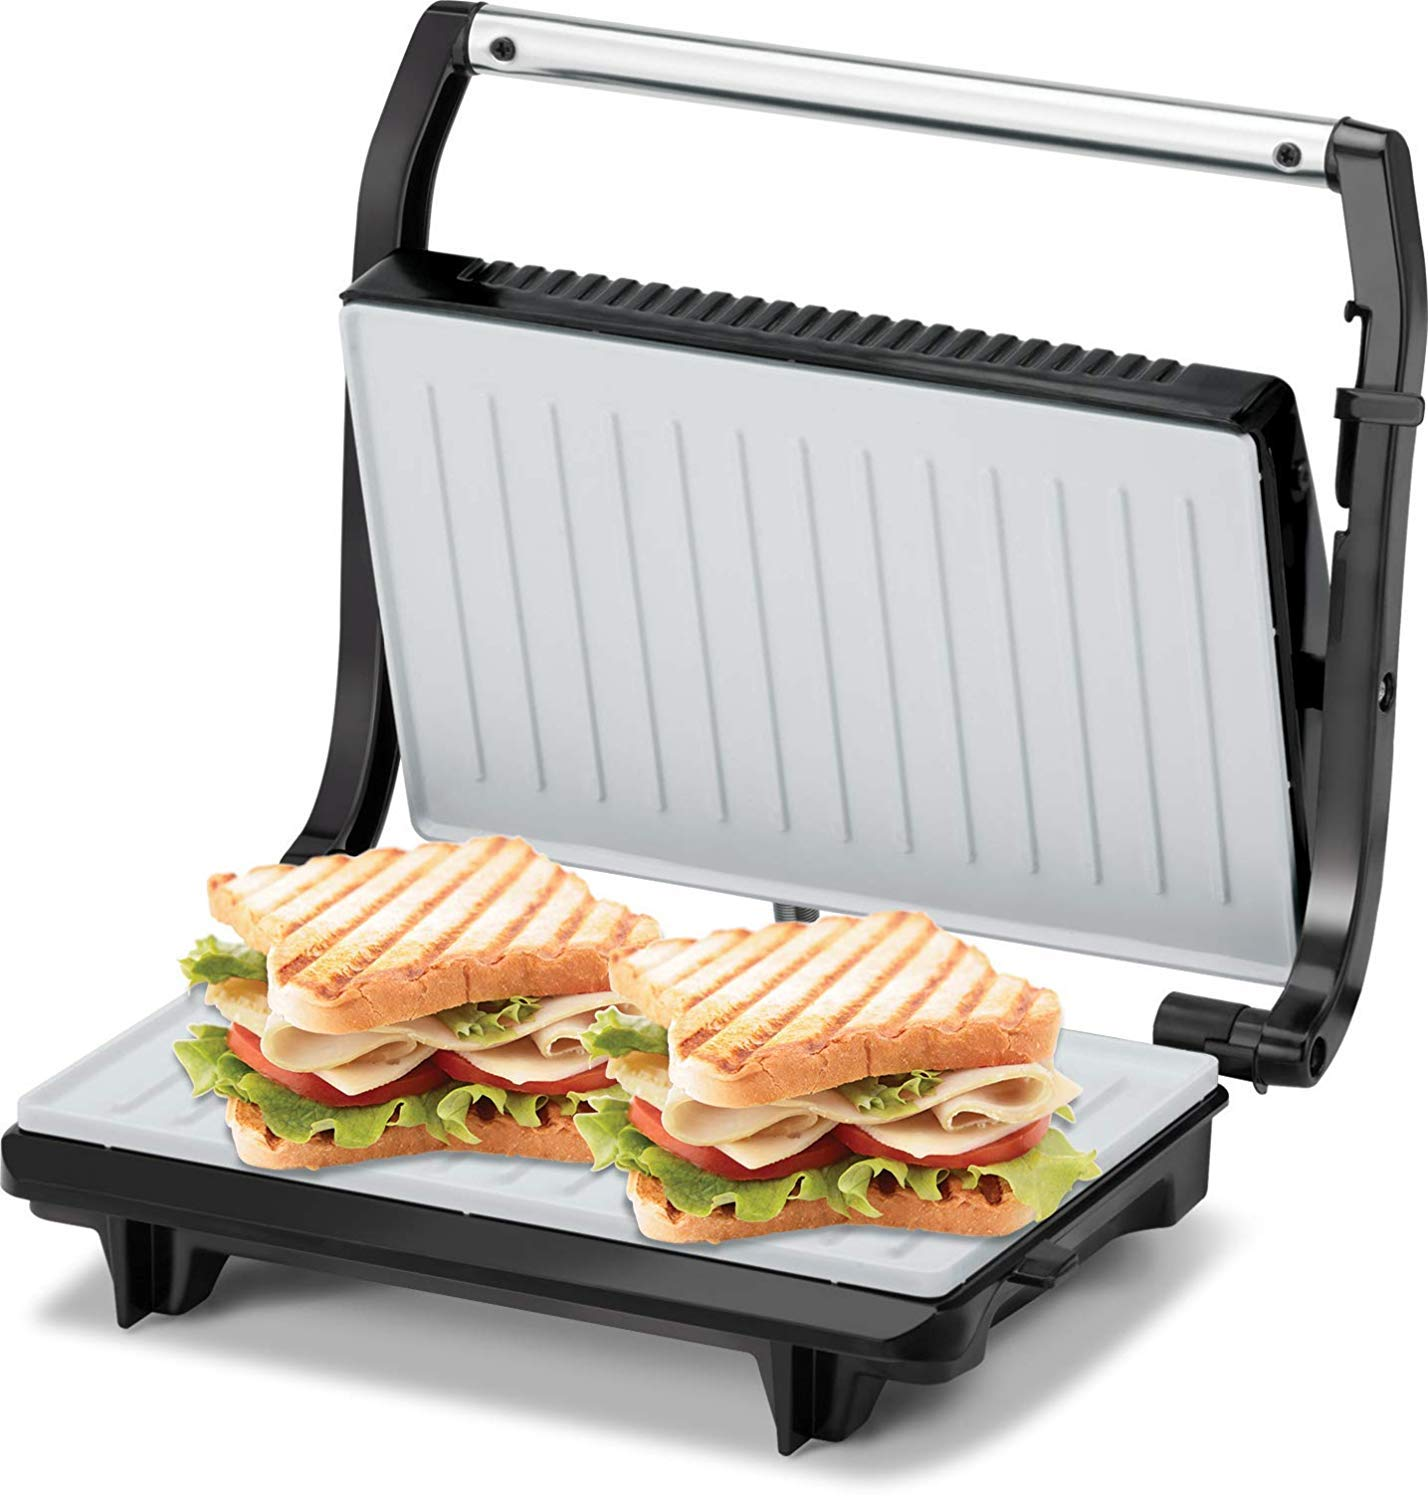 Buy Kent 16025 700 Watt Sandwich Grill Black Online At Low Prices In India Amazon In